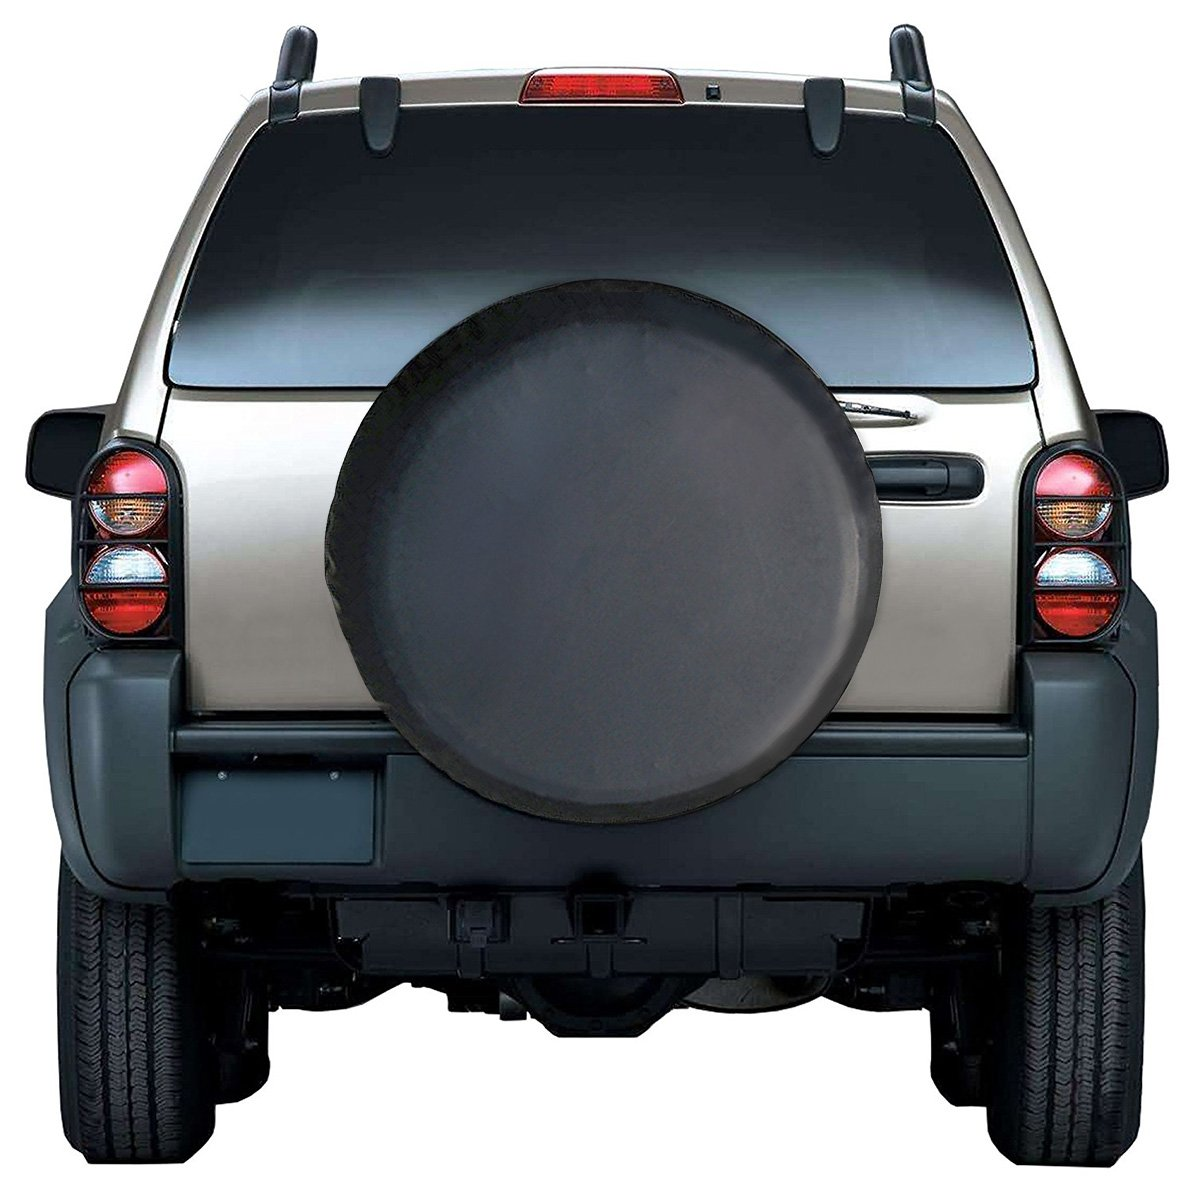 Audew Spare Tire Cover Soft Vinyl Water-Proof Wheel Tire Cover Universal Fit for Jeep SUV Trailer Truck 28 Black Truck 28 Black RV